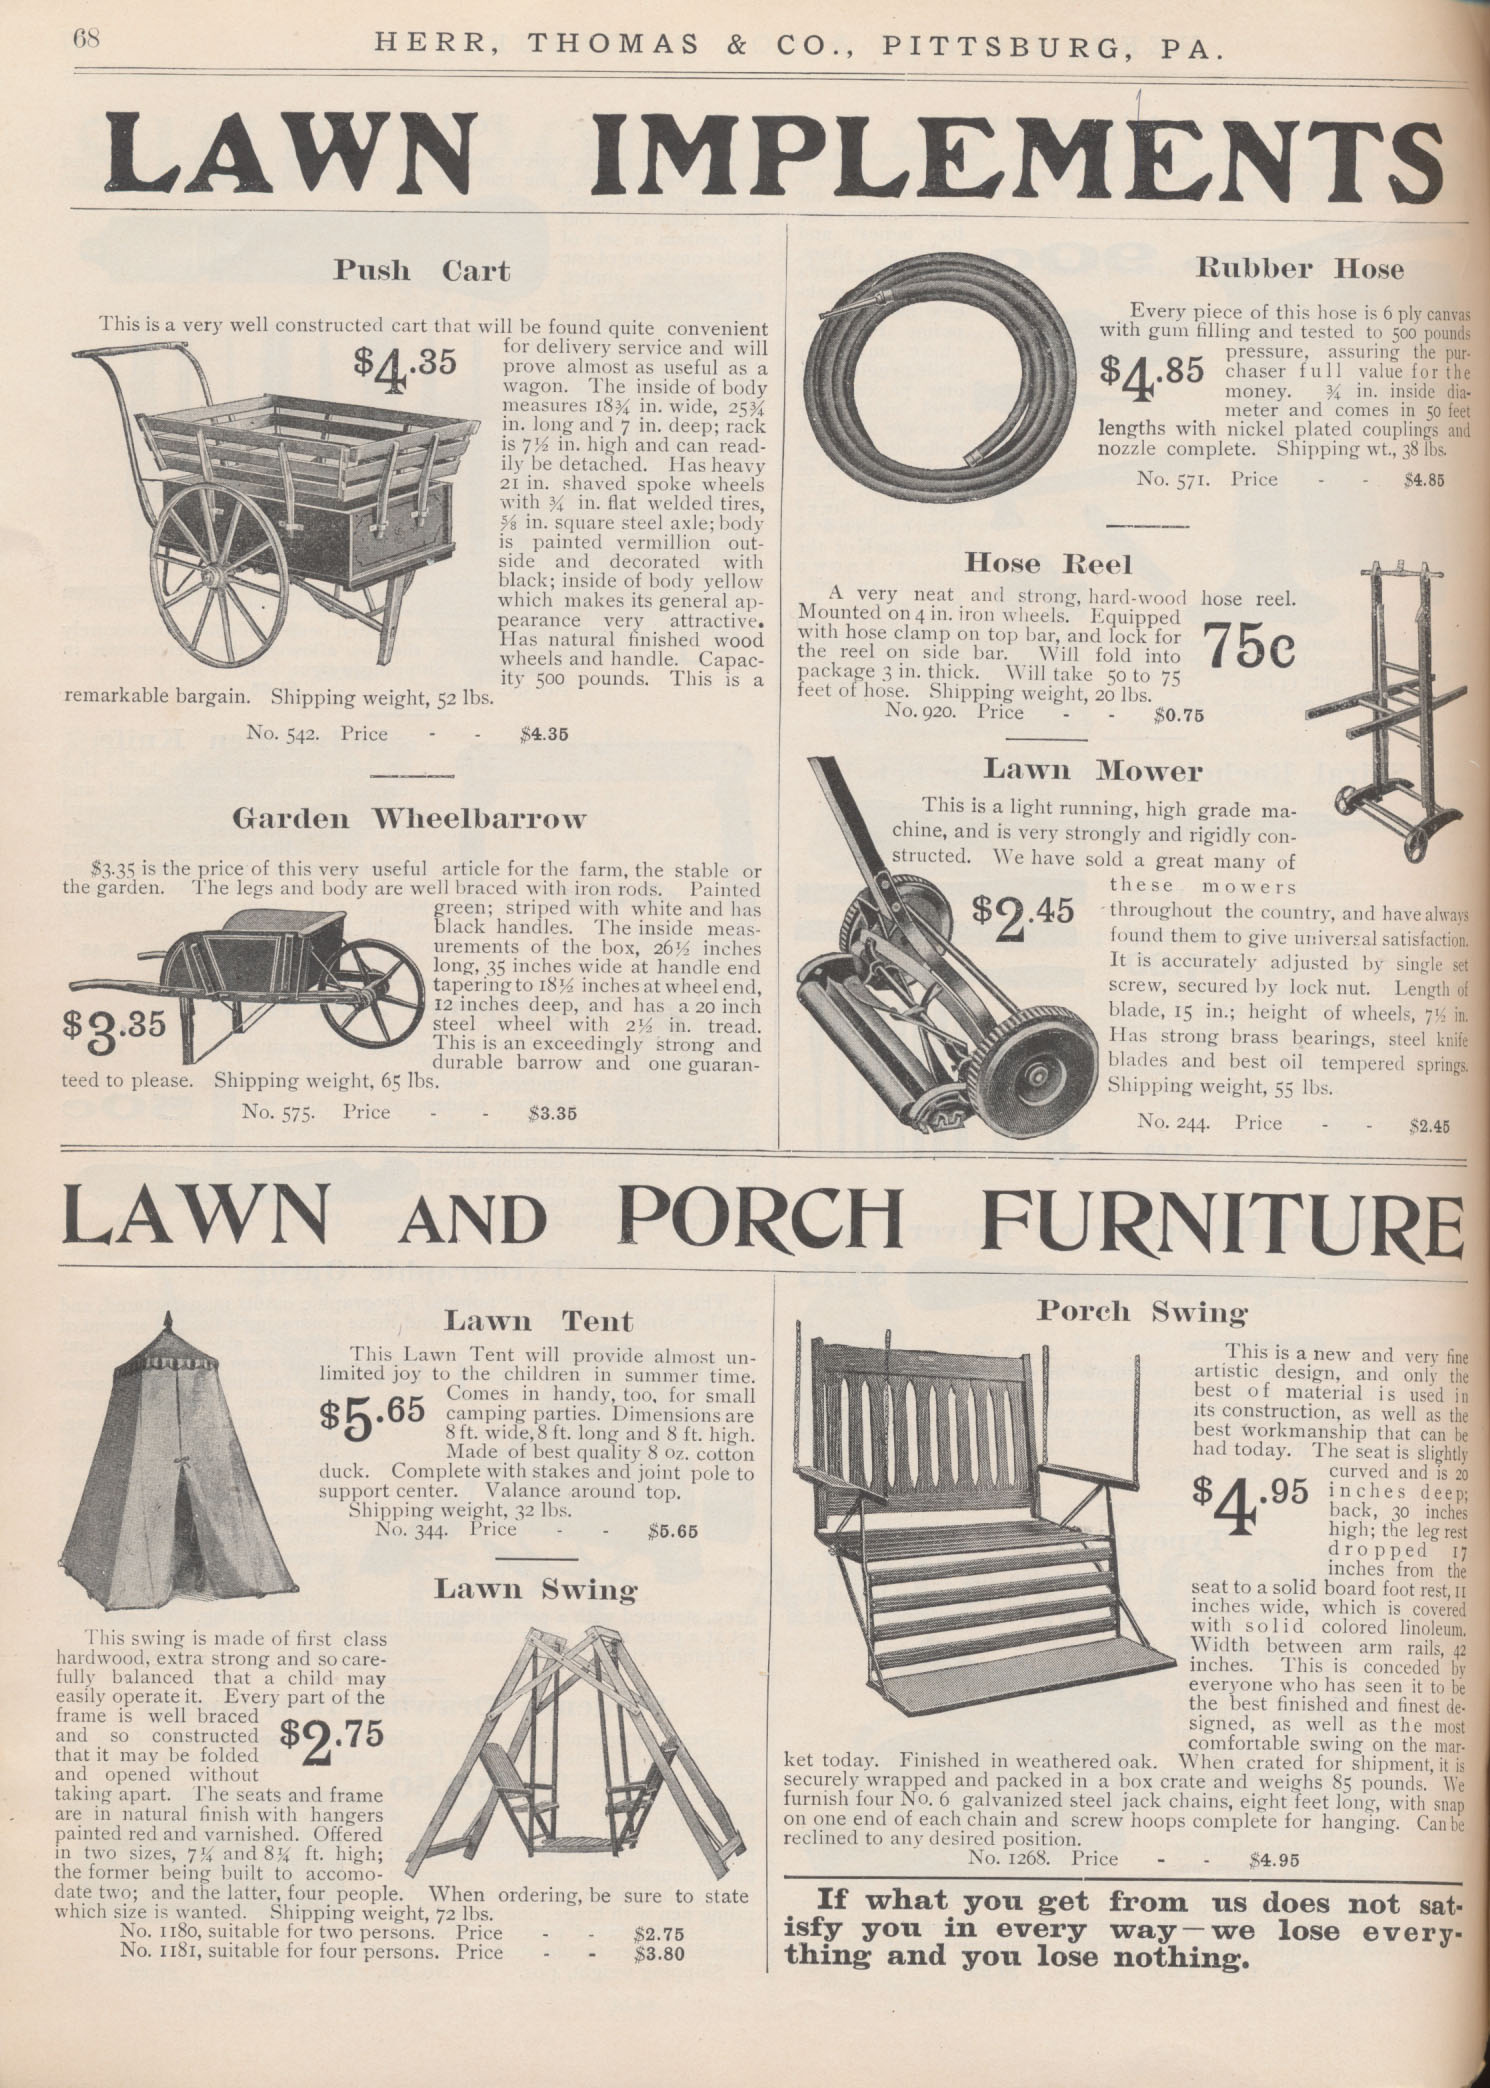 Lawn implements including push cart, garden wheelbarrow, rubber hose, hose reel, and lawn mower and lawn and porch furniture including lawn tent, lawn swing, and porch swing